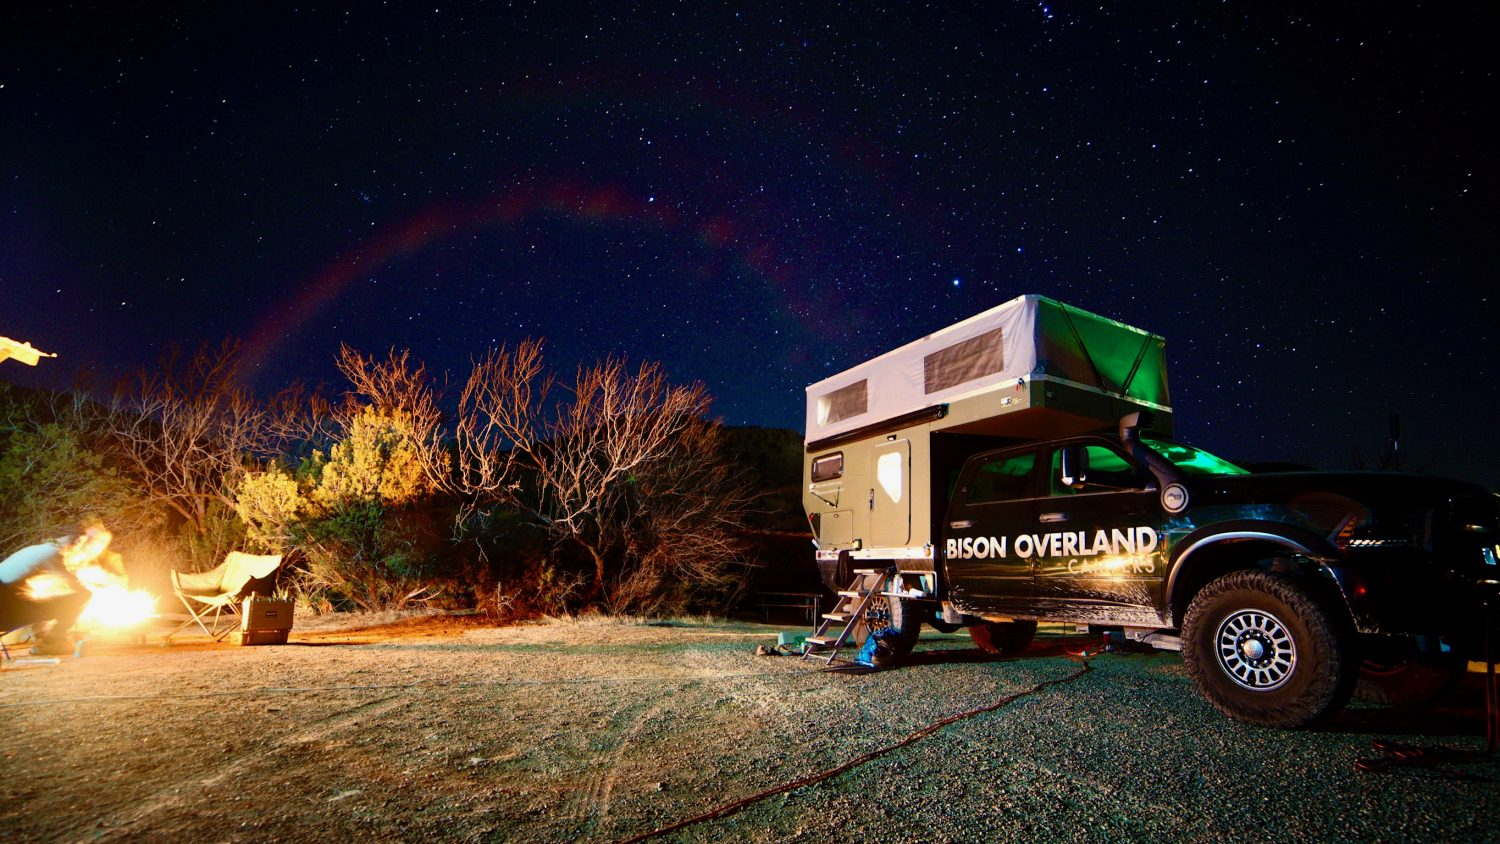 bison overland space wrangler at night